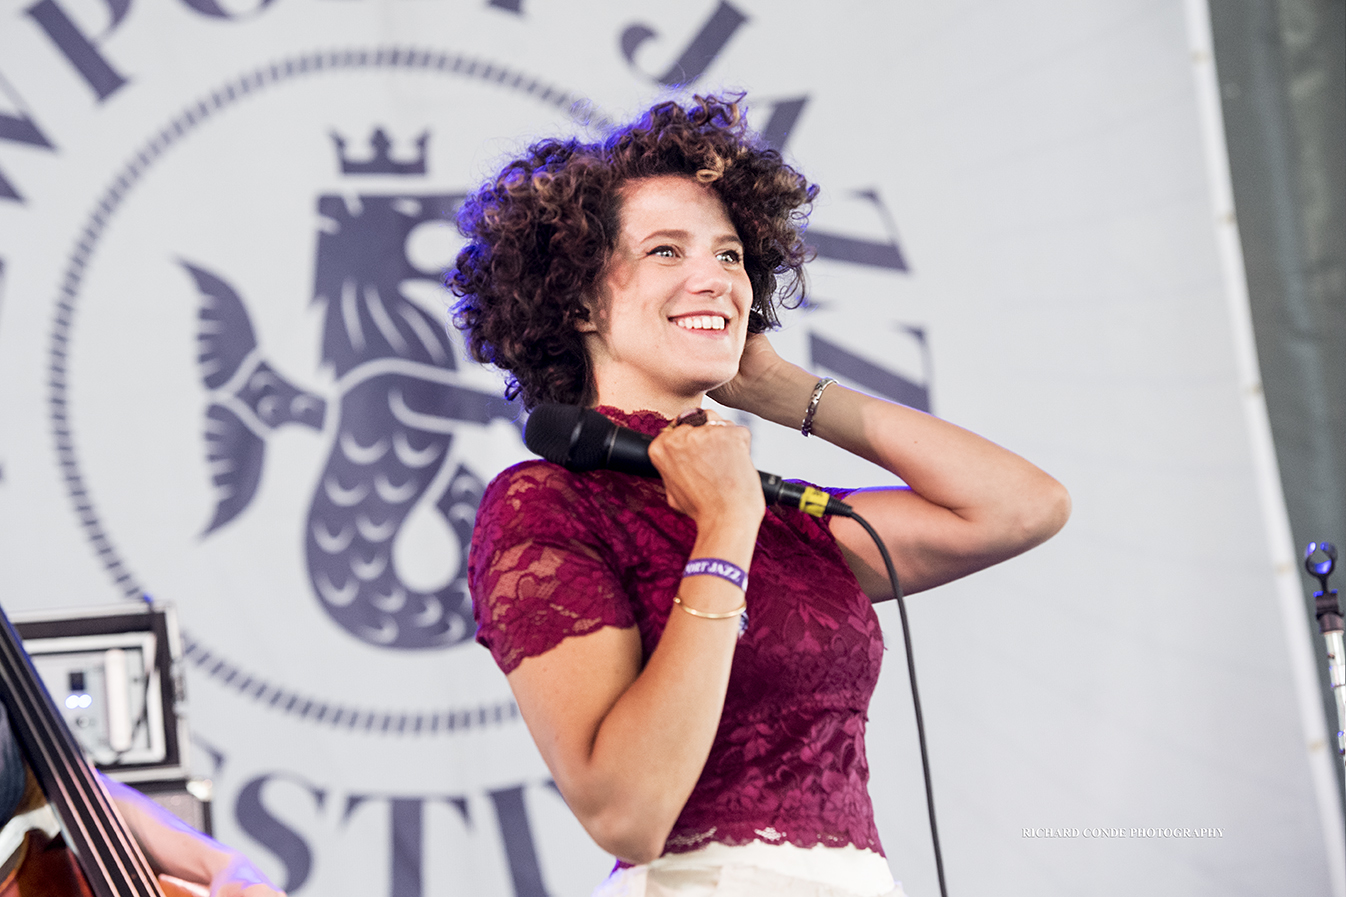 Cyrille Aimee at the 2017 Newport Jazz Festival